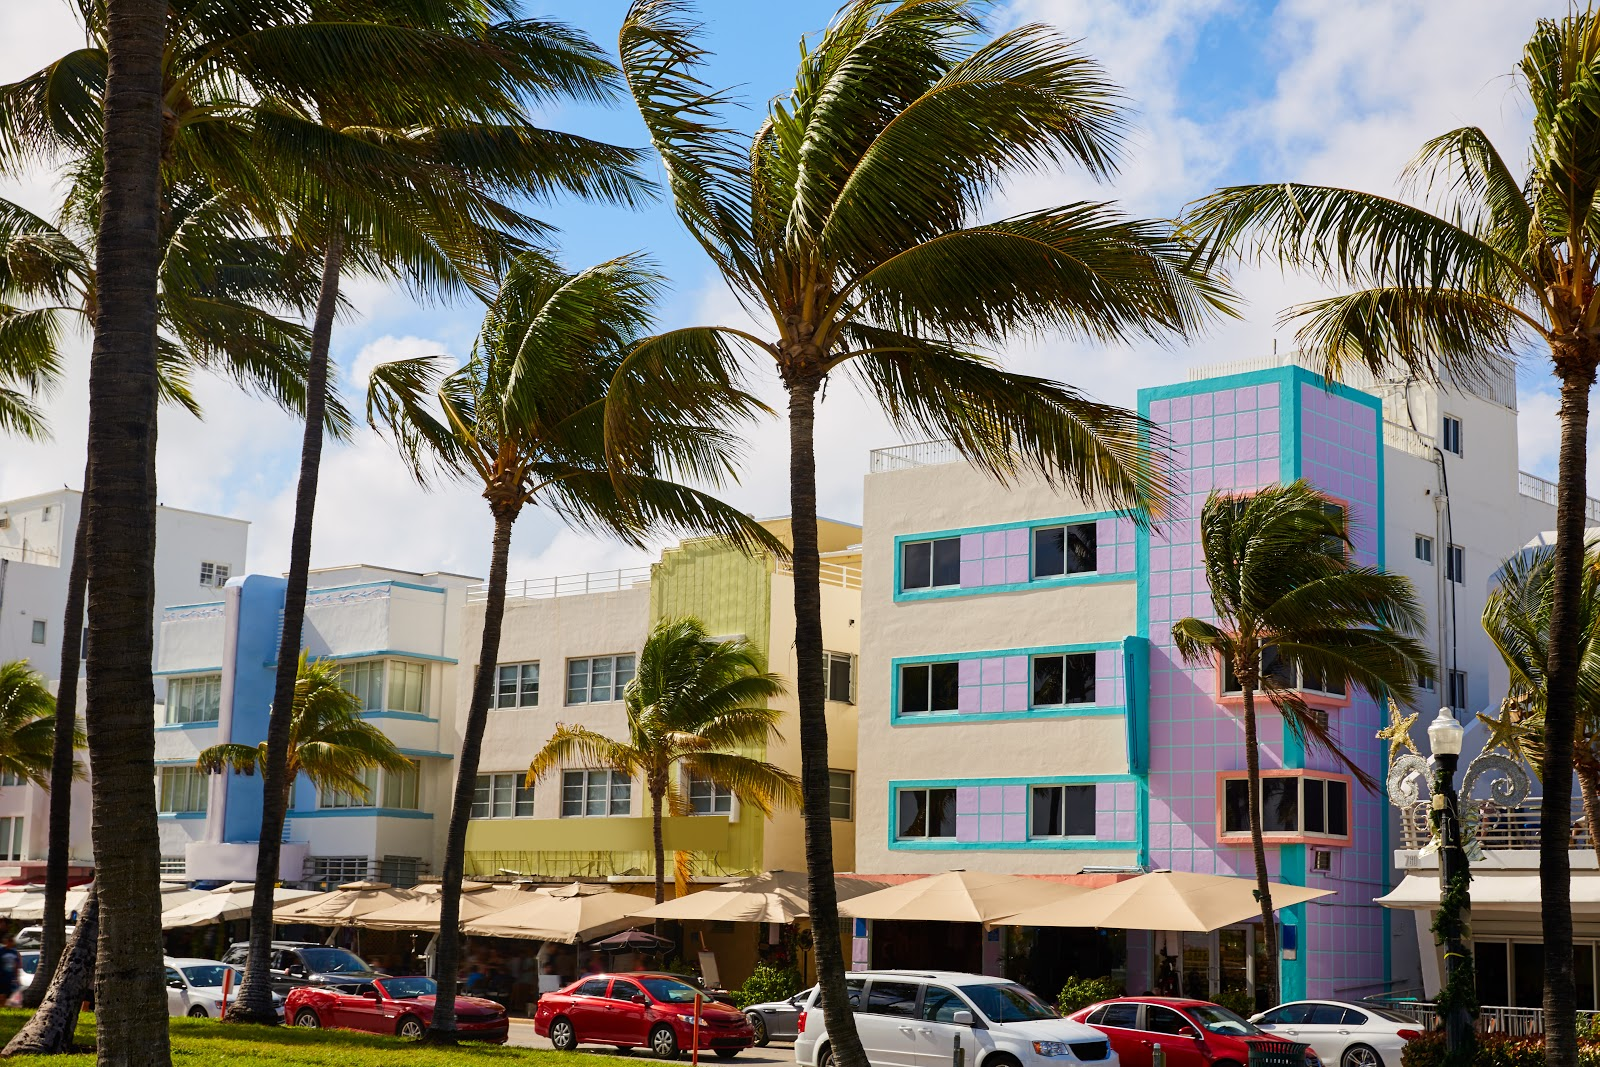 Some colorful examples of Art Deco buildings in the Miami Beach district. One of the main things to do in Miami.